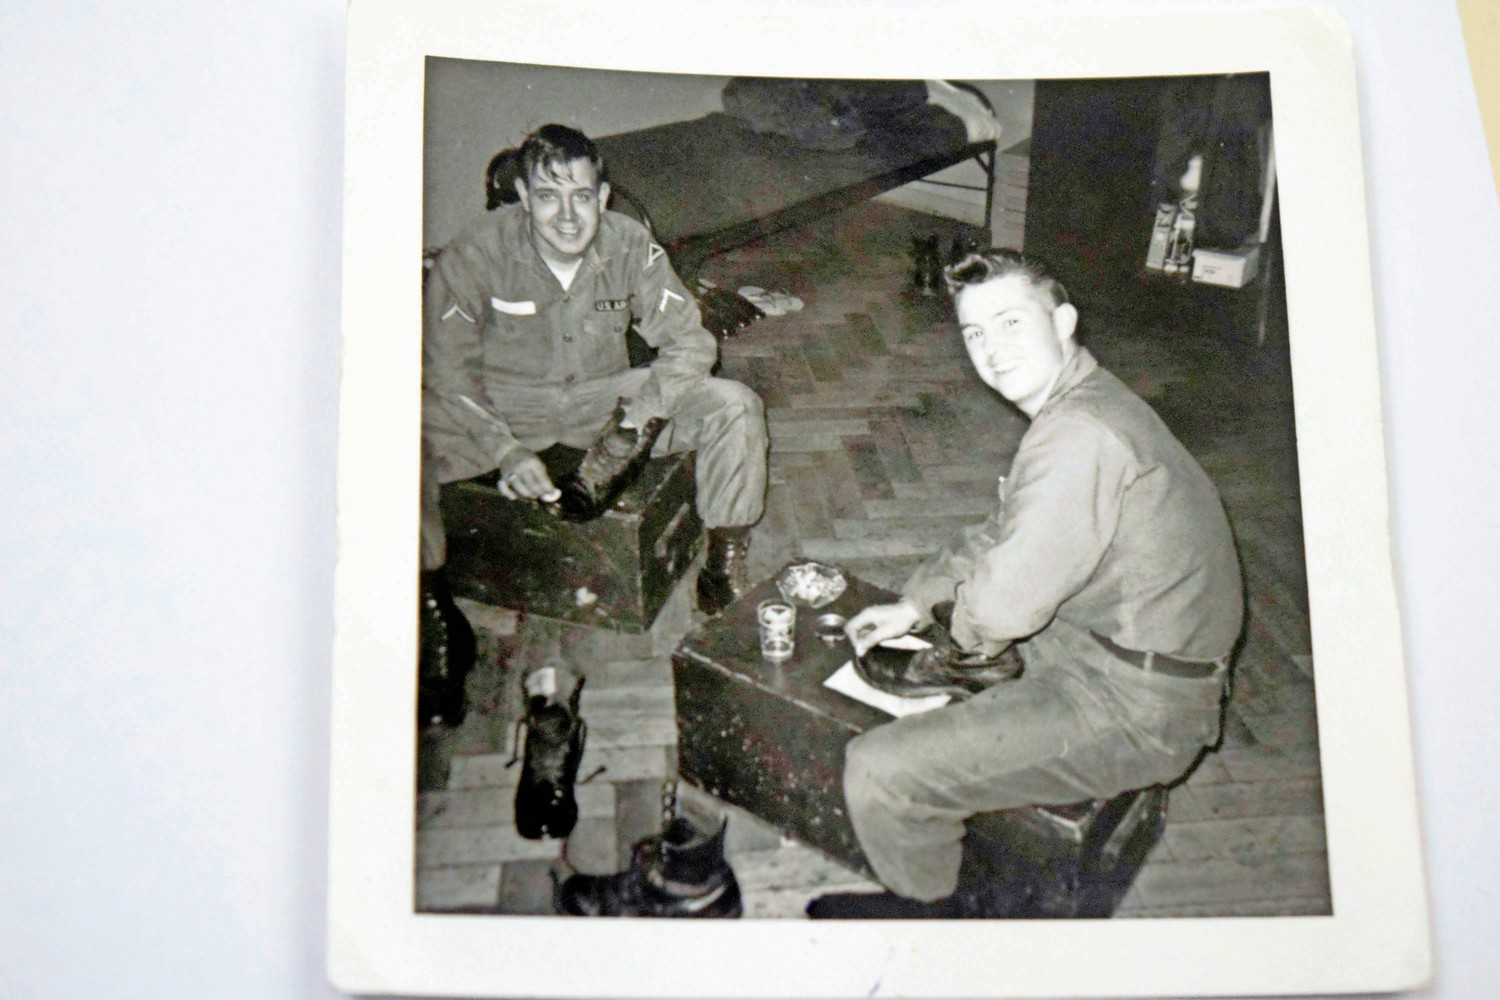 William Hoehn shined his boots during downtime while on border patrol in West Berlin in 1966. The Seaford native told the Herald this week how he was drafted into the Army at the height of the Vietnam War.